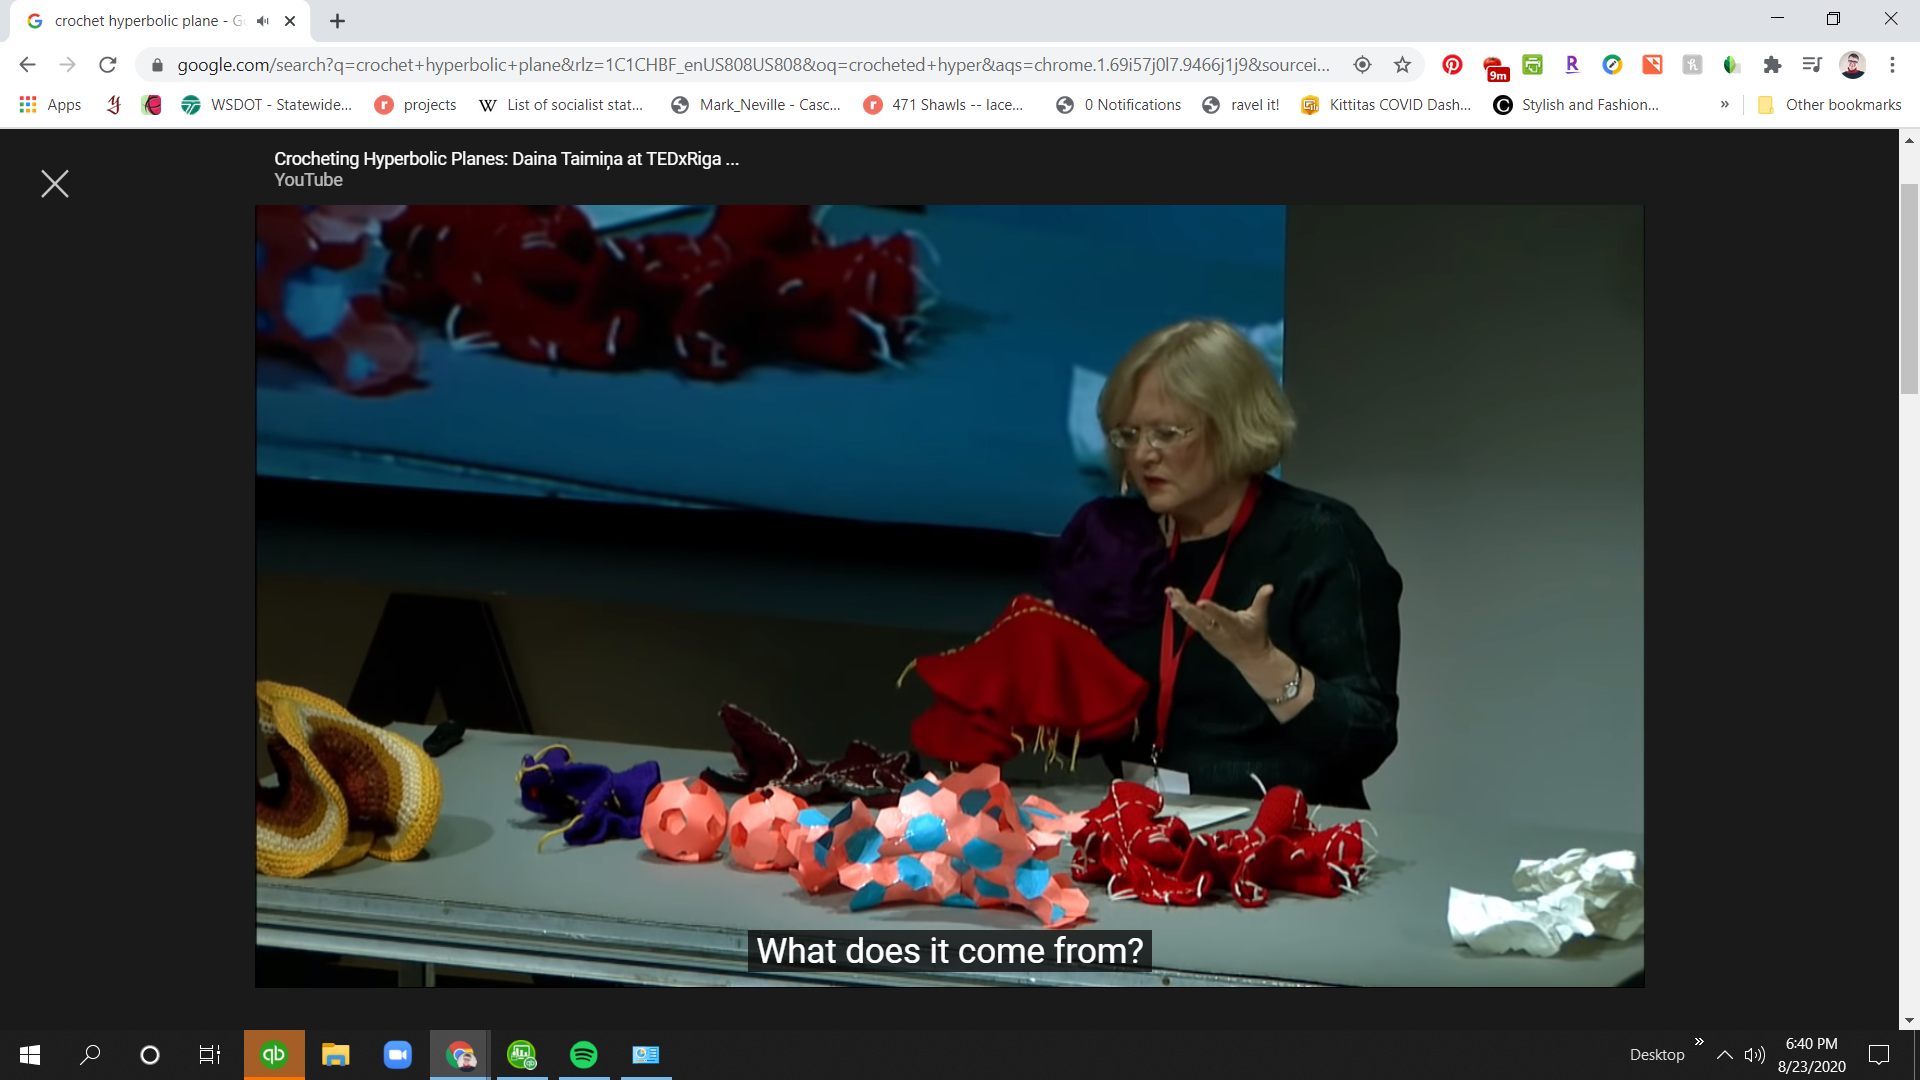 Screen shot of Daina Taimina delivering a talk about crocheted hyperbolic planes